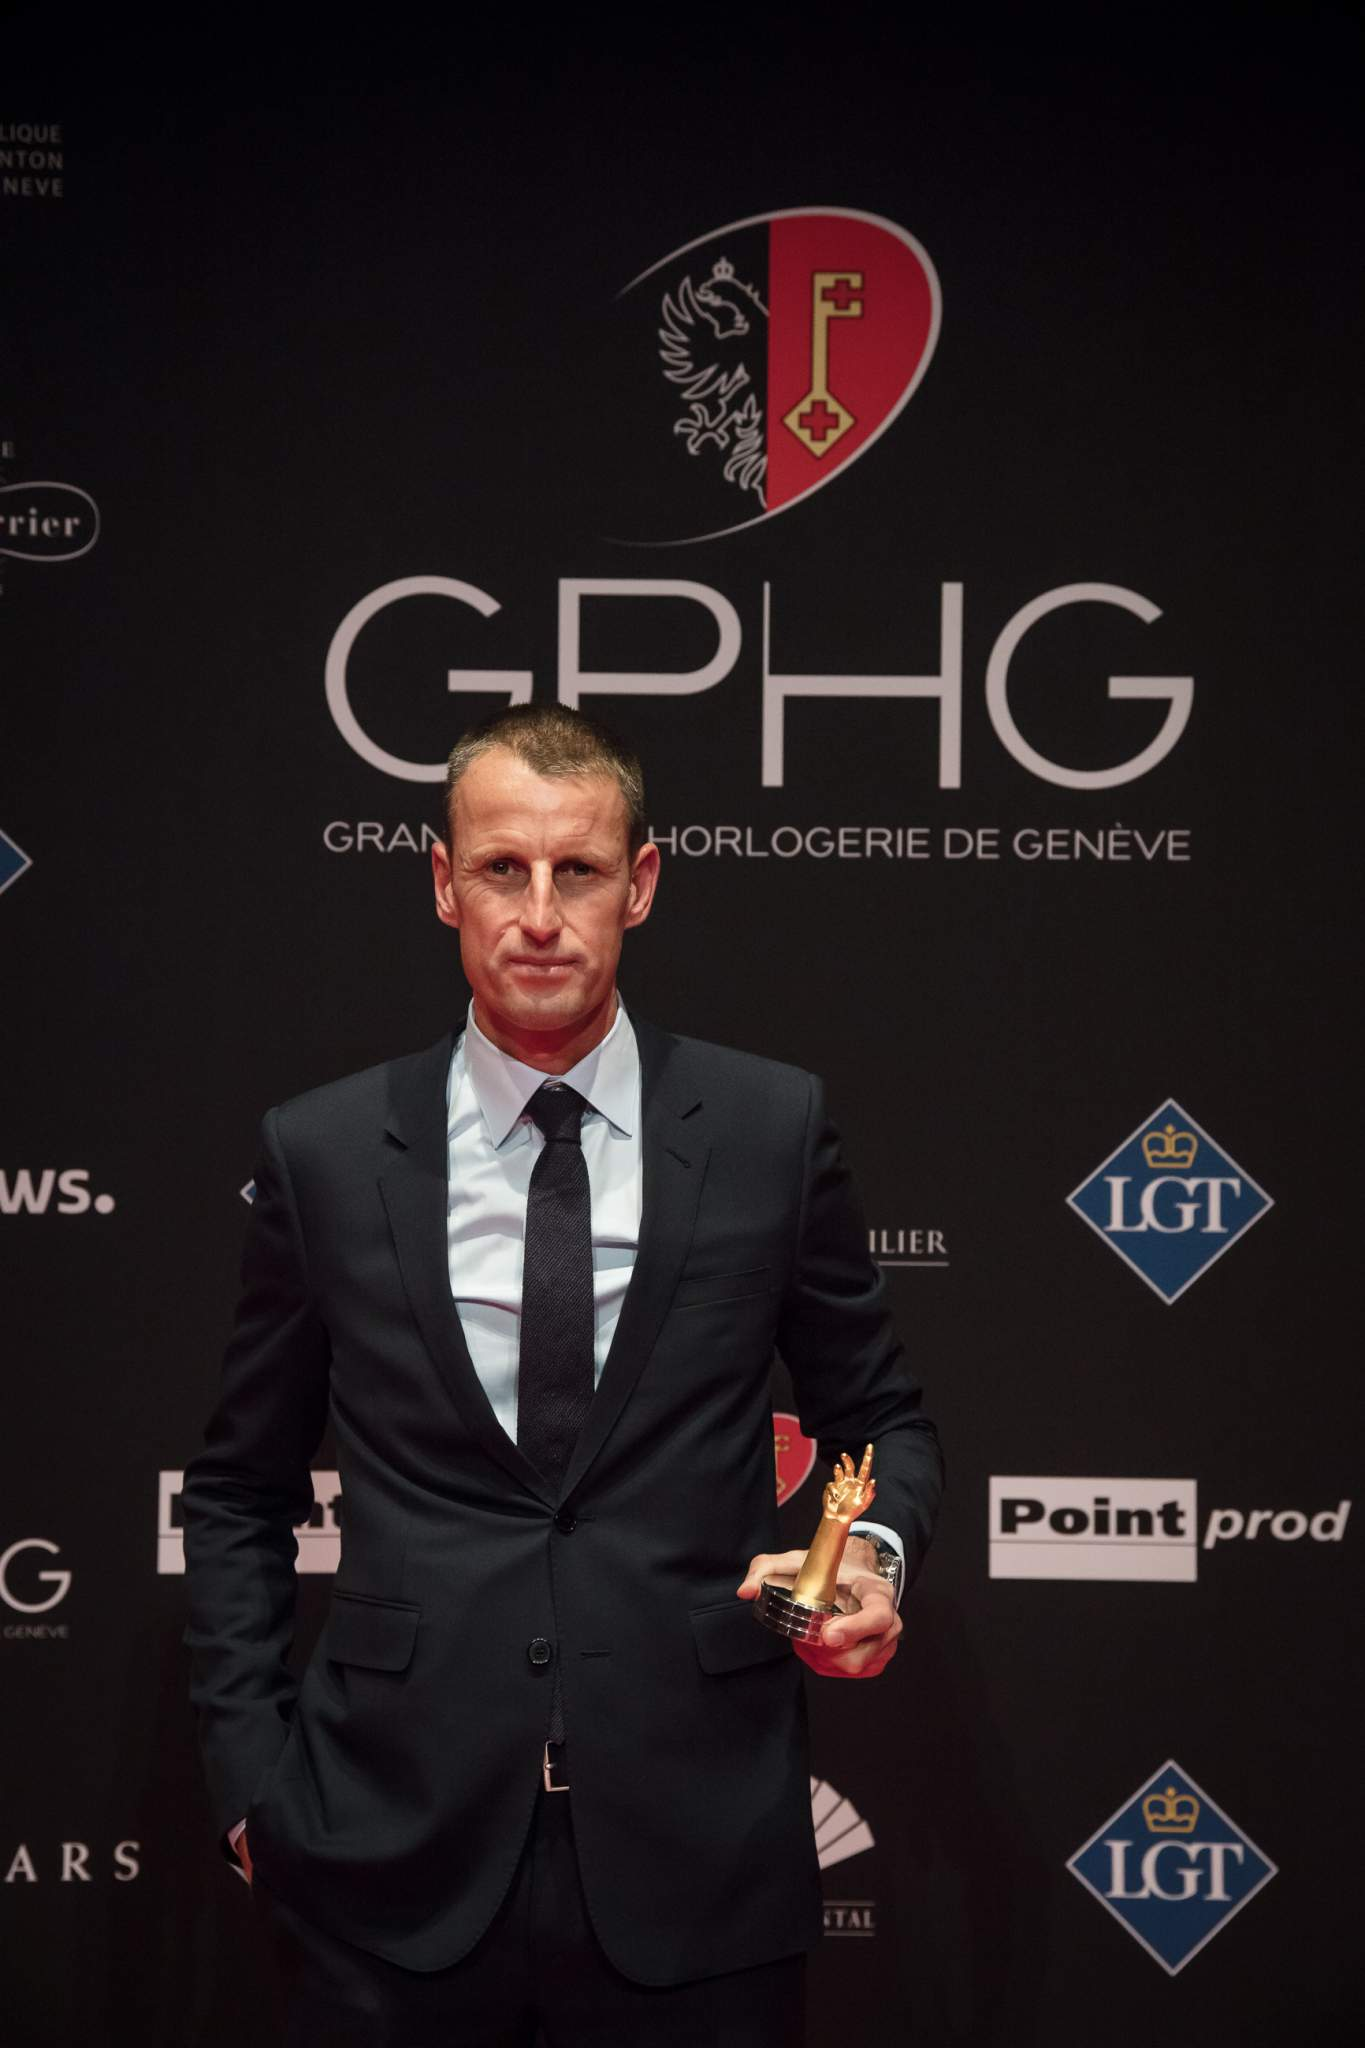 Patrick Pruniaux (CEO of Ulysse Nardin, winner of the Sports Watch Prize 2017)